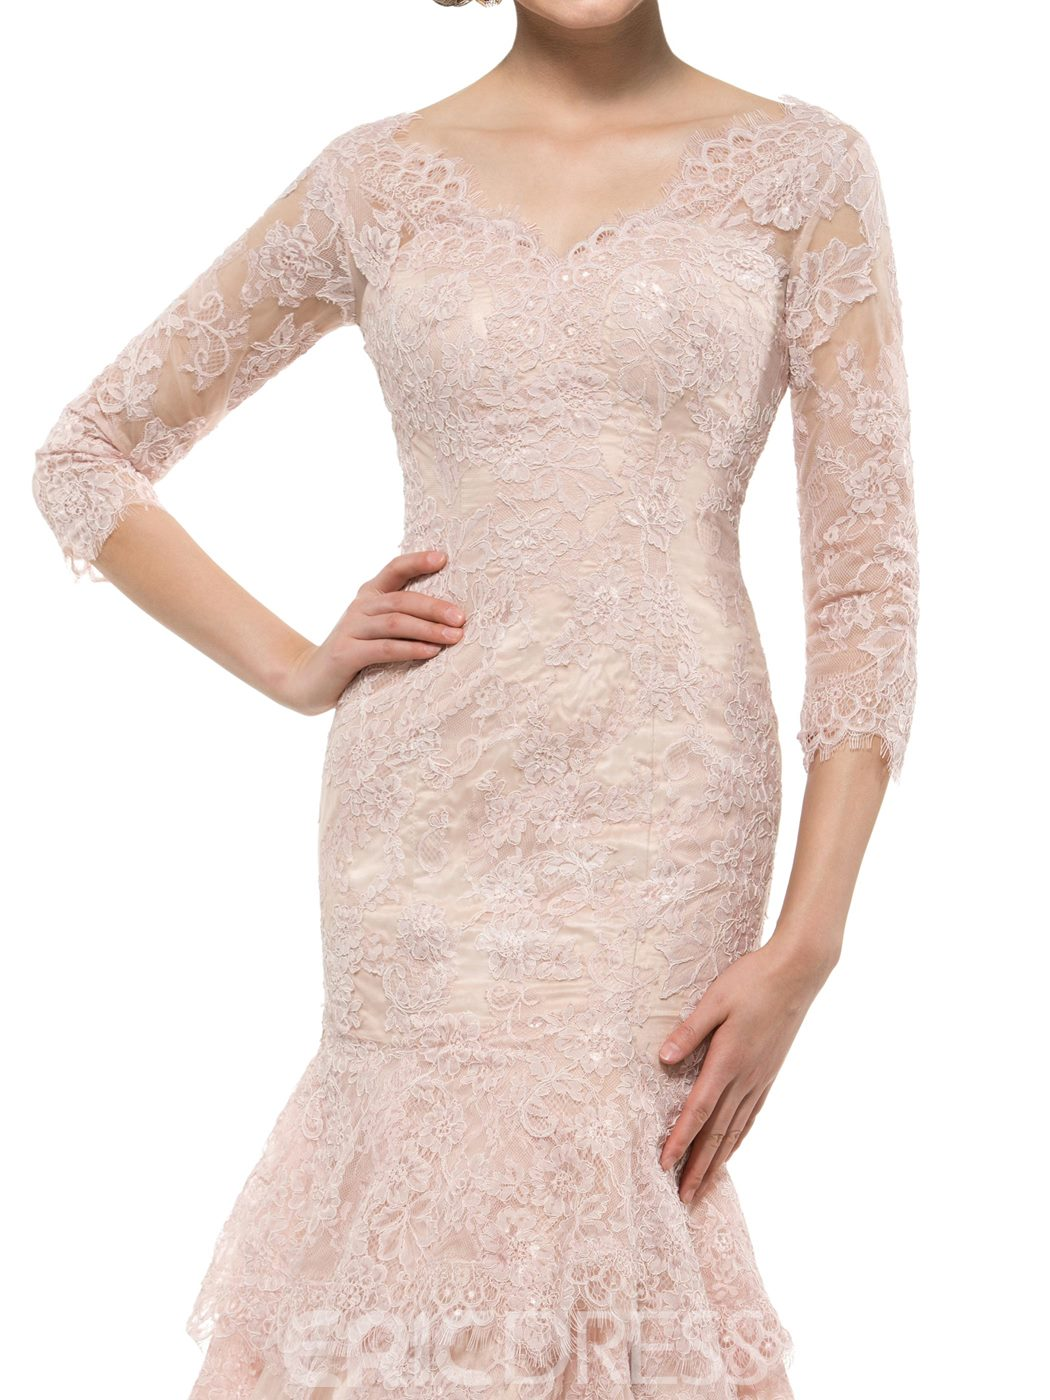 Ericdress Beautiful 3/4 Length Sleeves Lace Mermaid Mother Of The Bride Dress